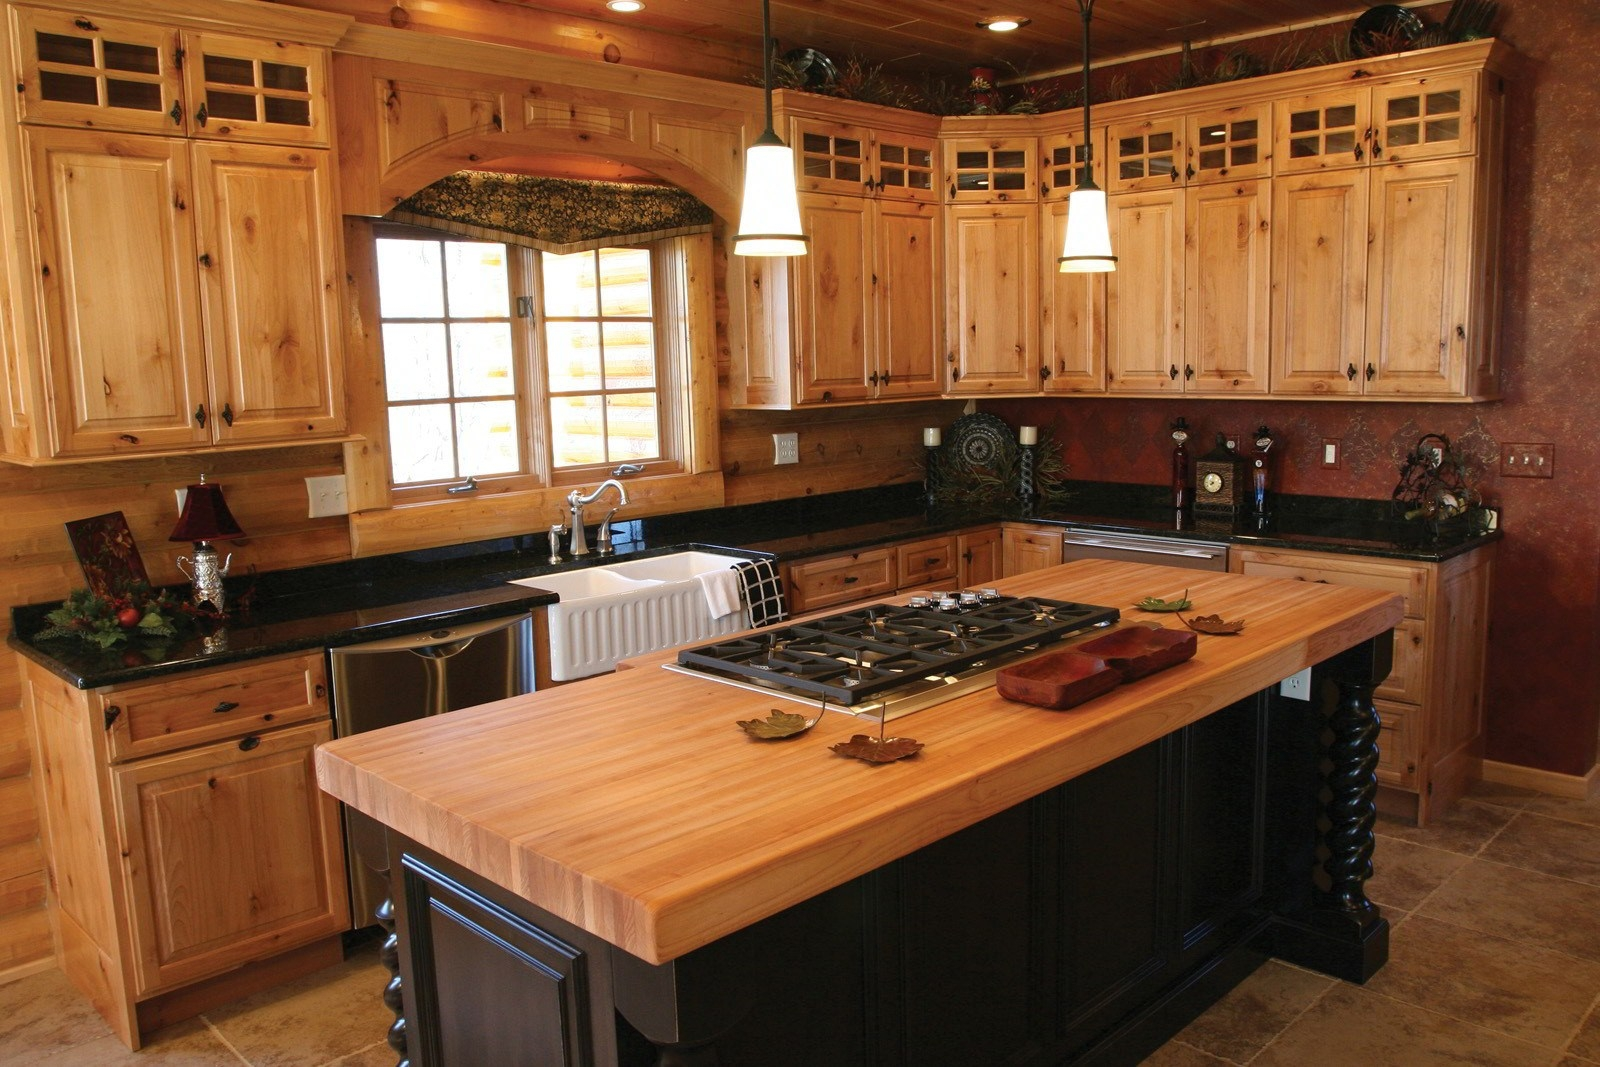 Antique Wood Kitchen Cabinets